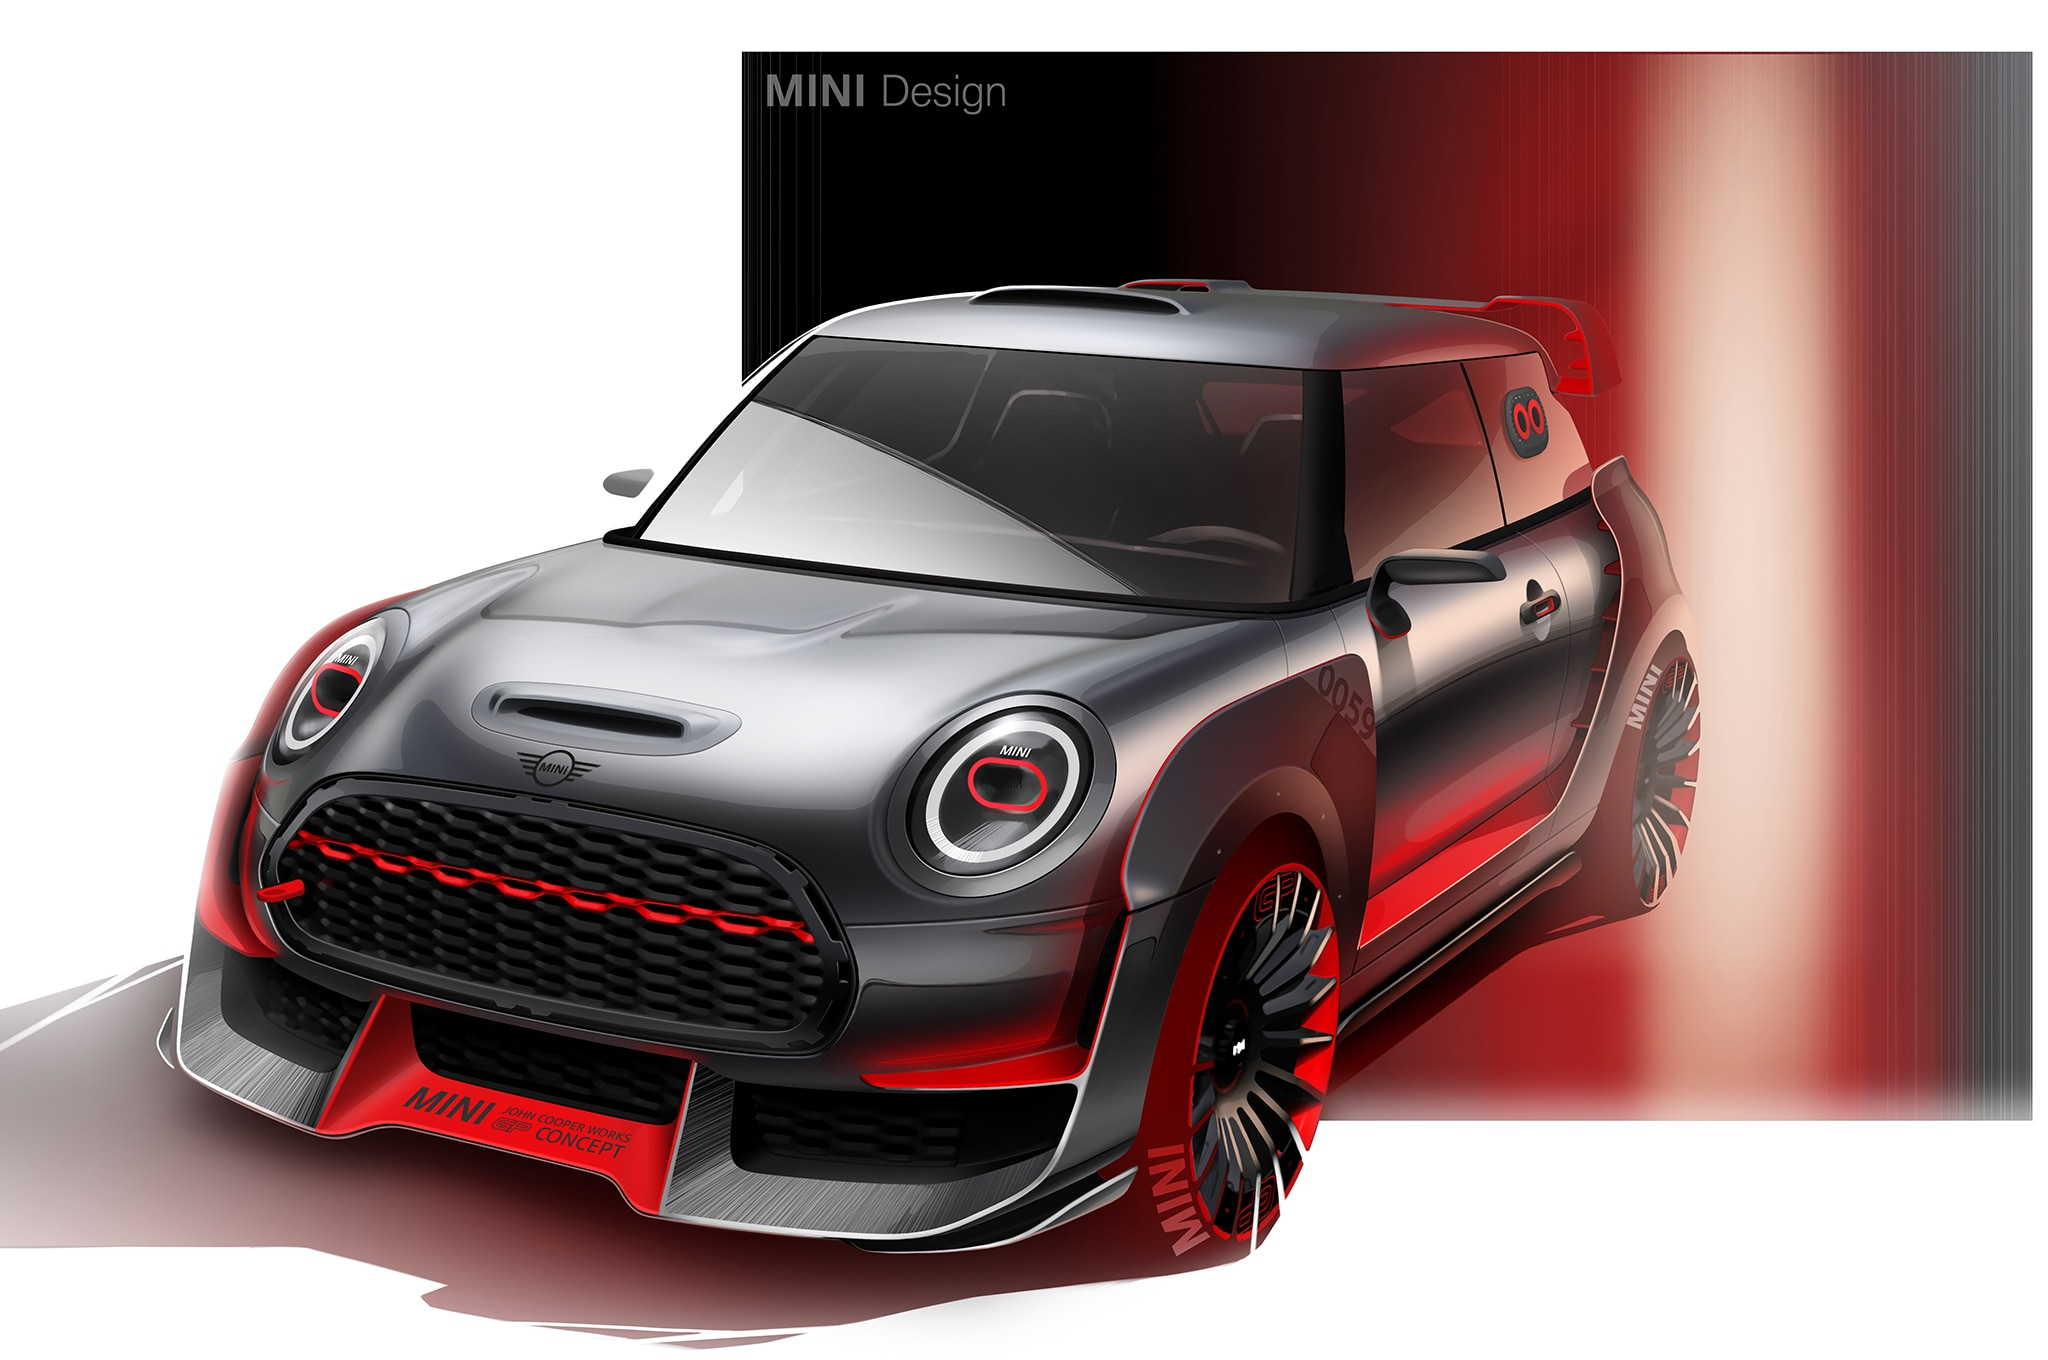 mini john cooper works gp concept to debut at 2017 frankfurt motor show automobile magazine. Black Bedroom Furniture Sets. Home Design Ideas